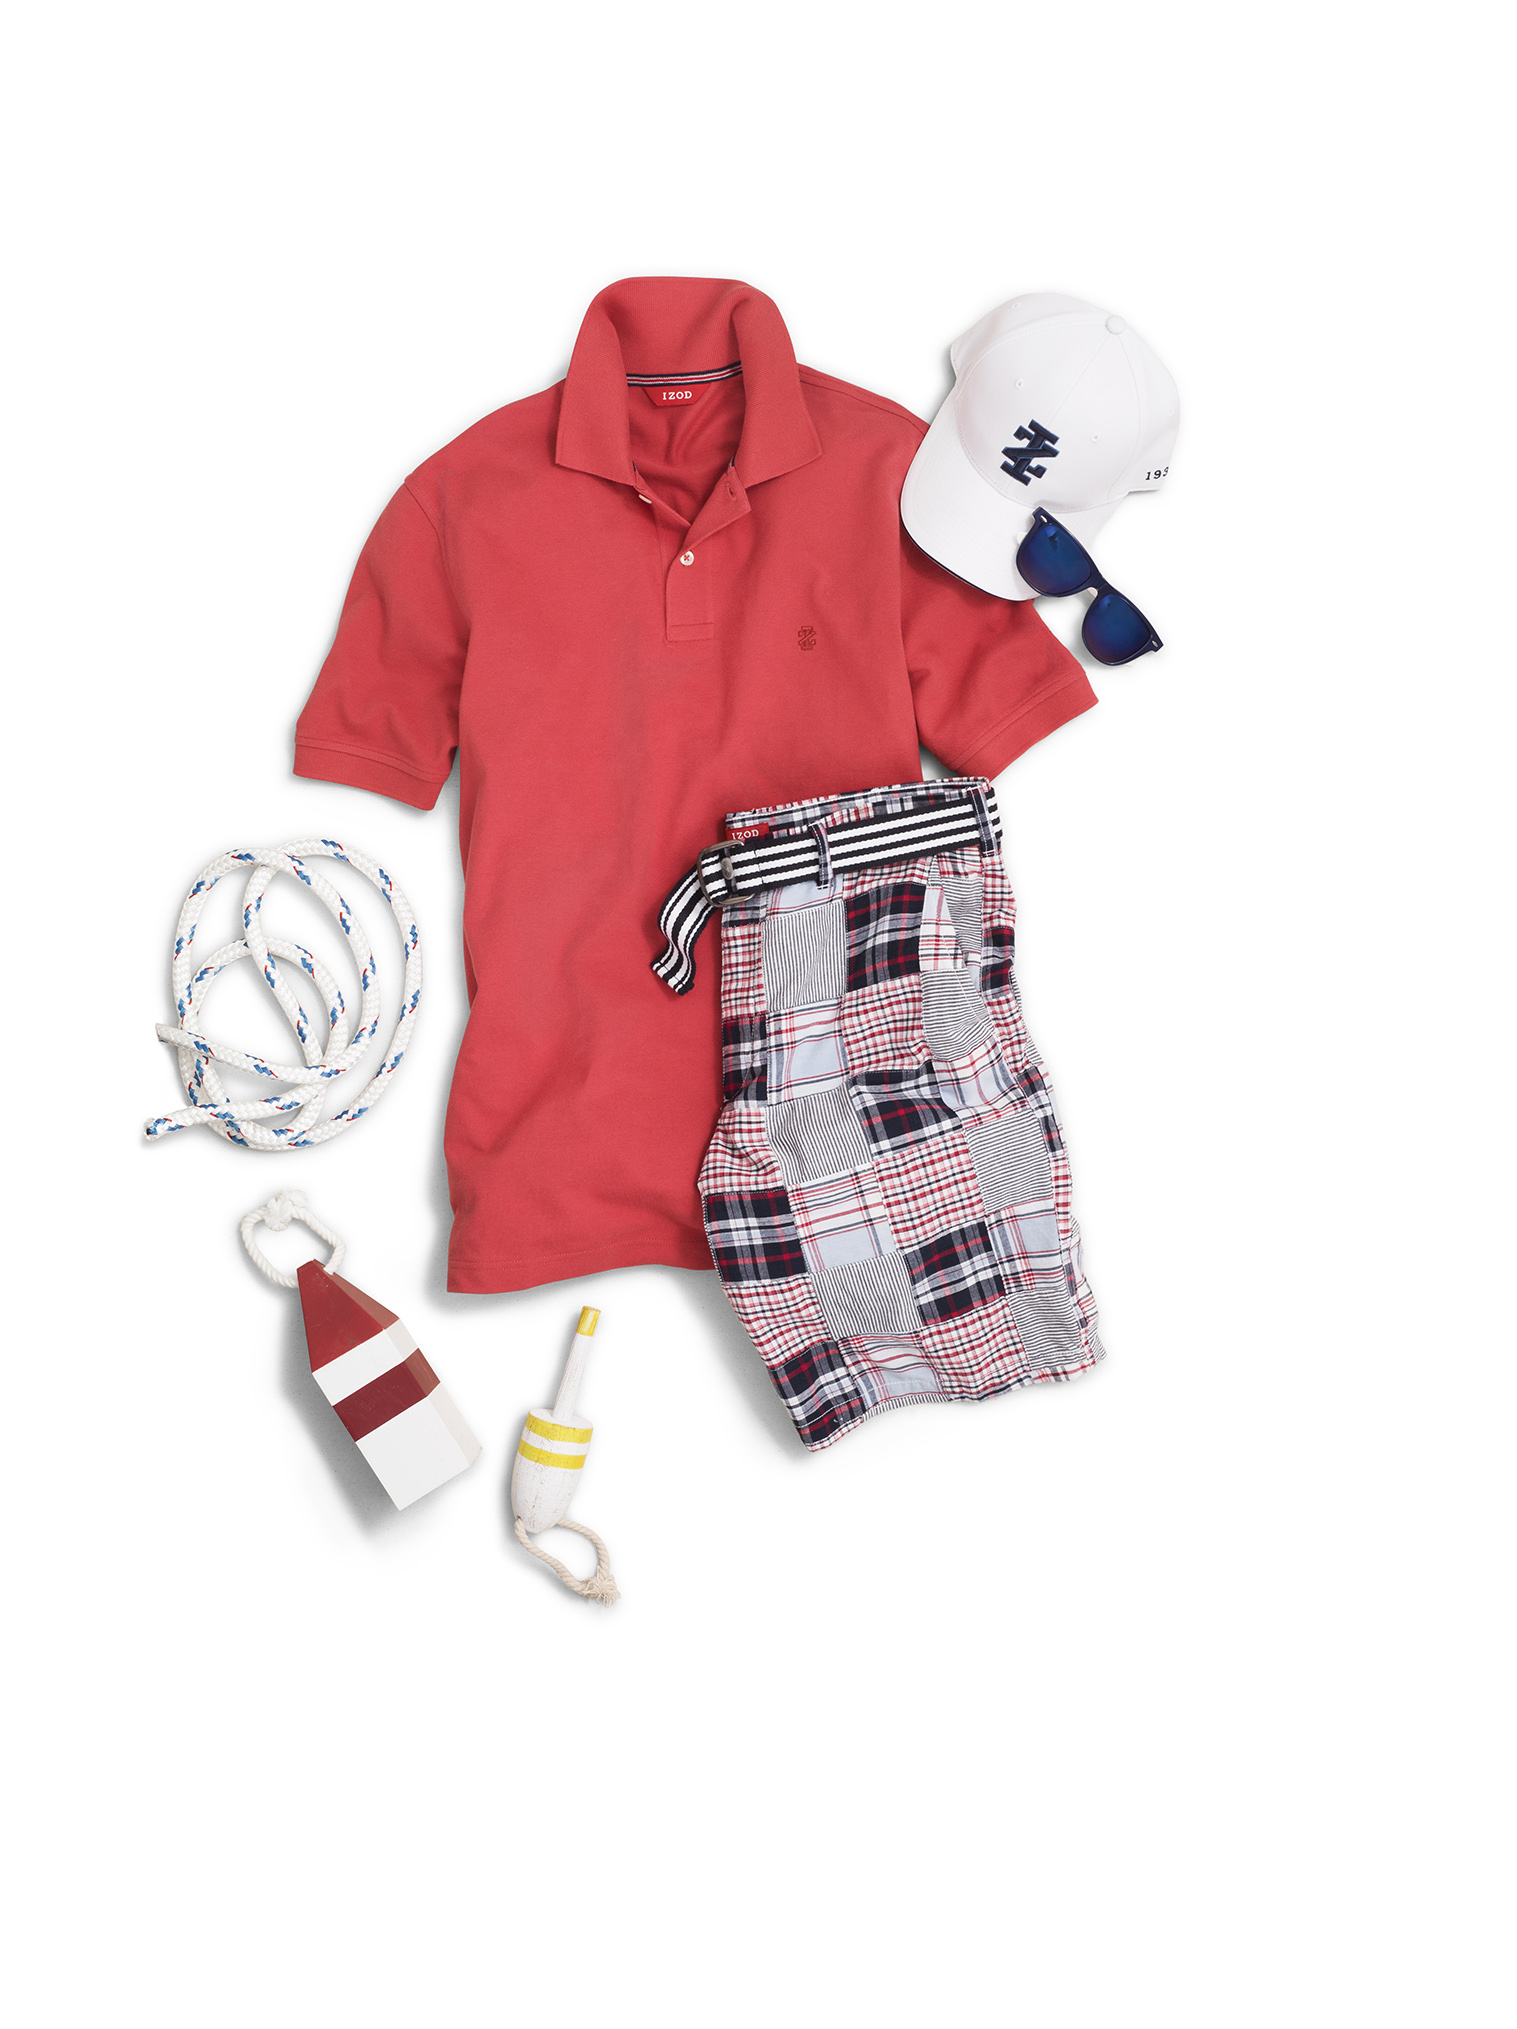 IZOD_Polo_Look_fnl copy